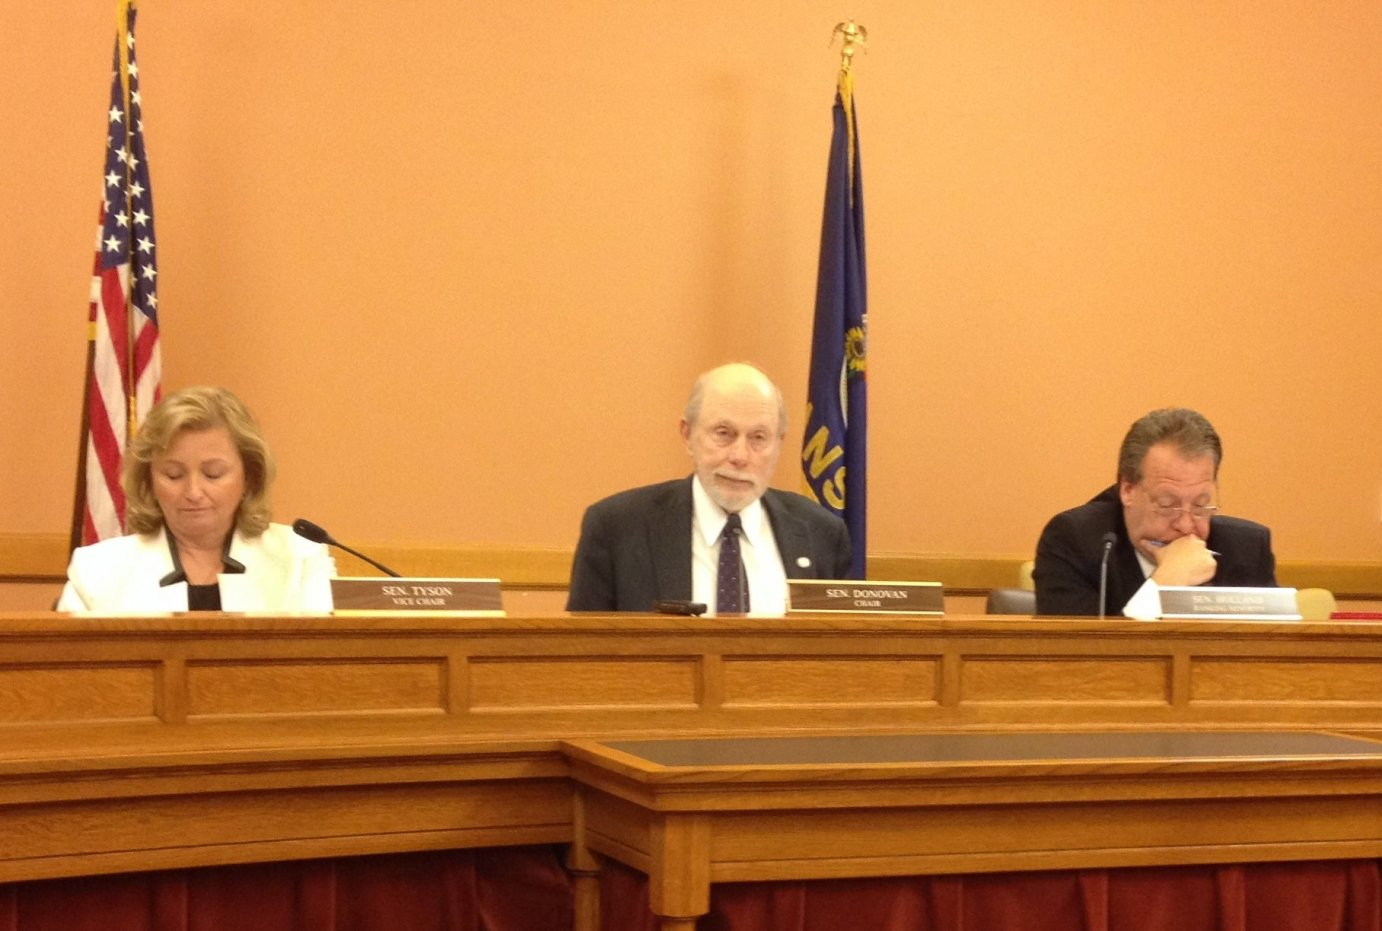 Senate Assessment and Taxation Chairman Les Donovan (center), Vice Chairman Caryn Tyson (left), and Ranking Minority Member Tom Holland (right) (photo by Bryan Thompson)